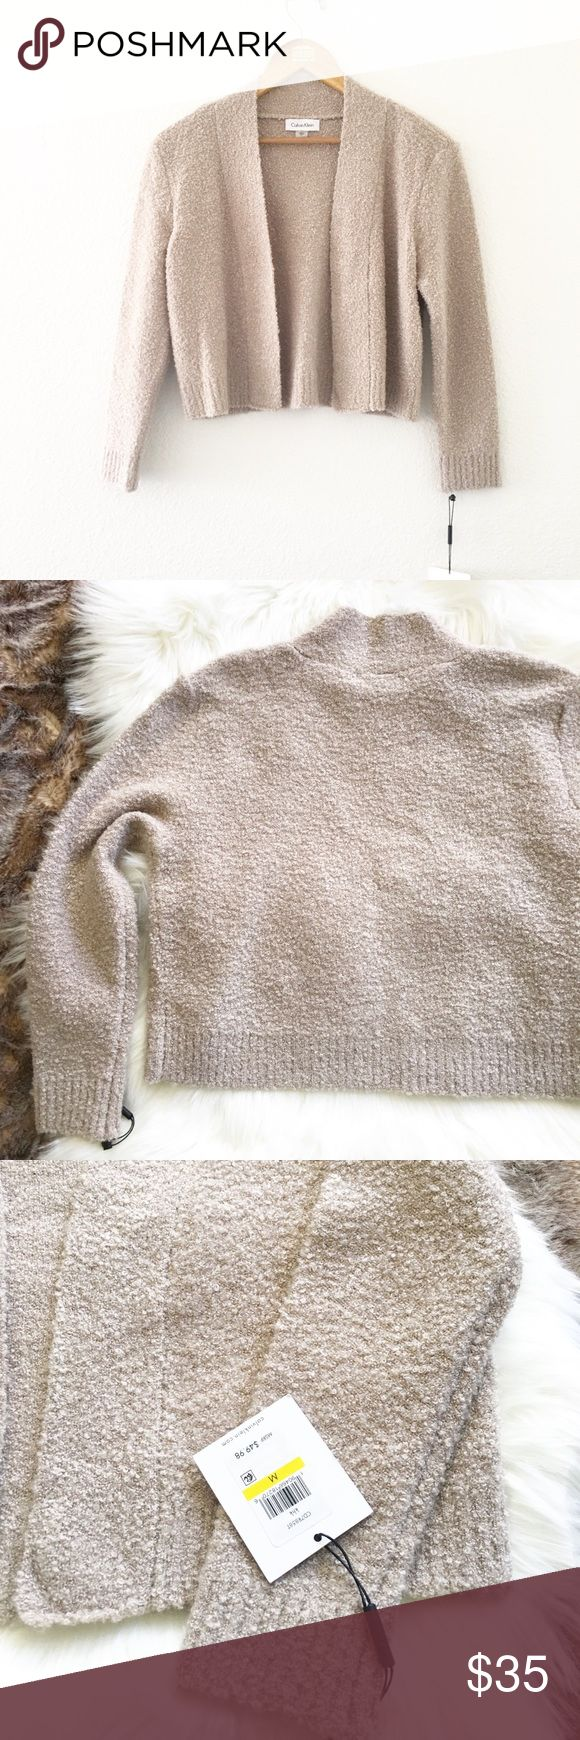 NWT Calvin Klein Tan Boucle Shrug Sweater NWT  Calvin Klein Brand Tan Boucle (soft ) Shrug Long Sleeve Sweater Slight stretch  Cropped design  Tan Color  Size Medium  18 inches Long  19 across with front closed Materials are-Acrylic + Nylon + Wool + 2% spandex Calvin Klein Sweaters Shrugs & Ponchos